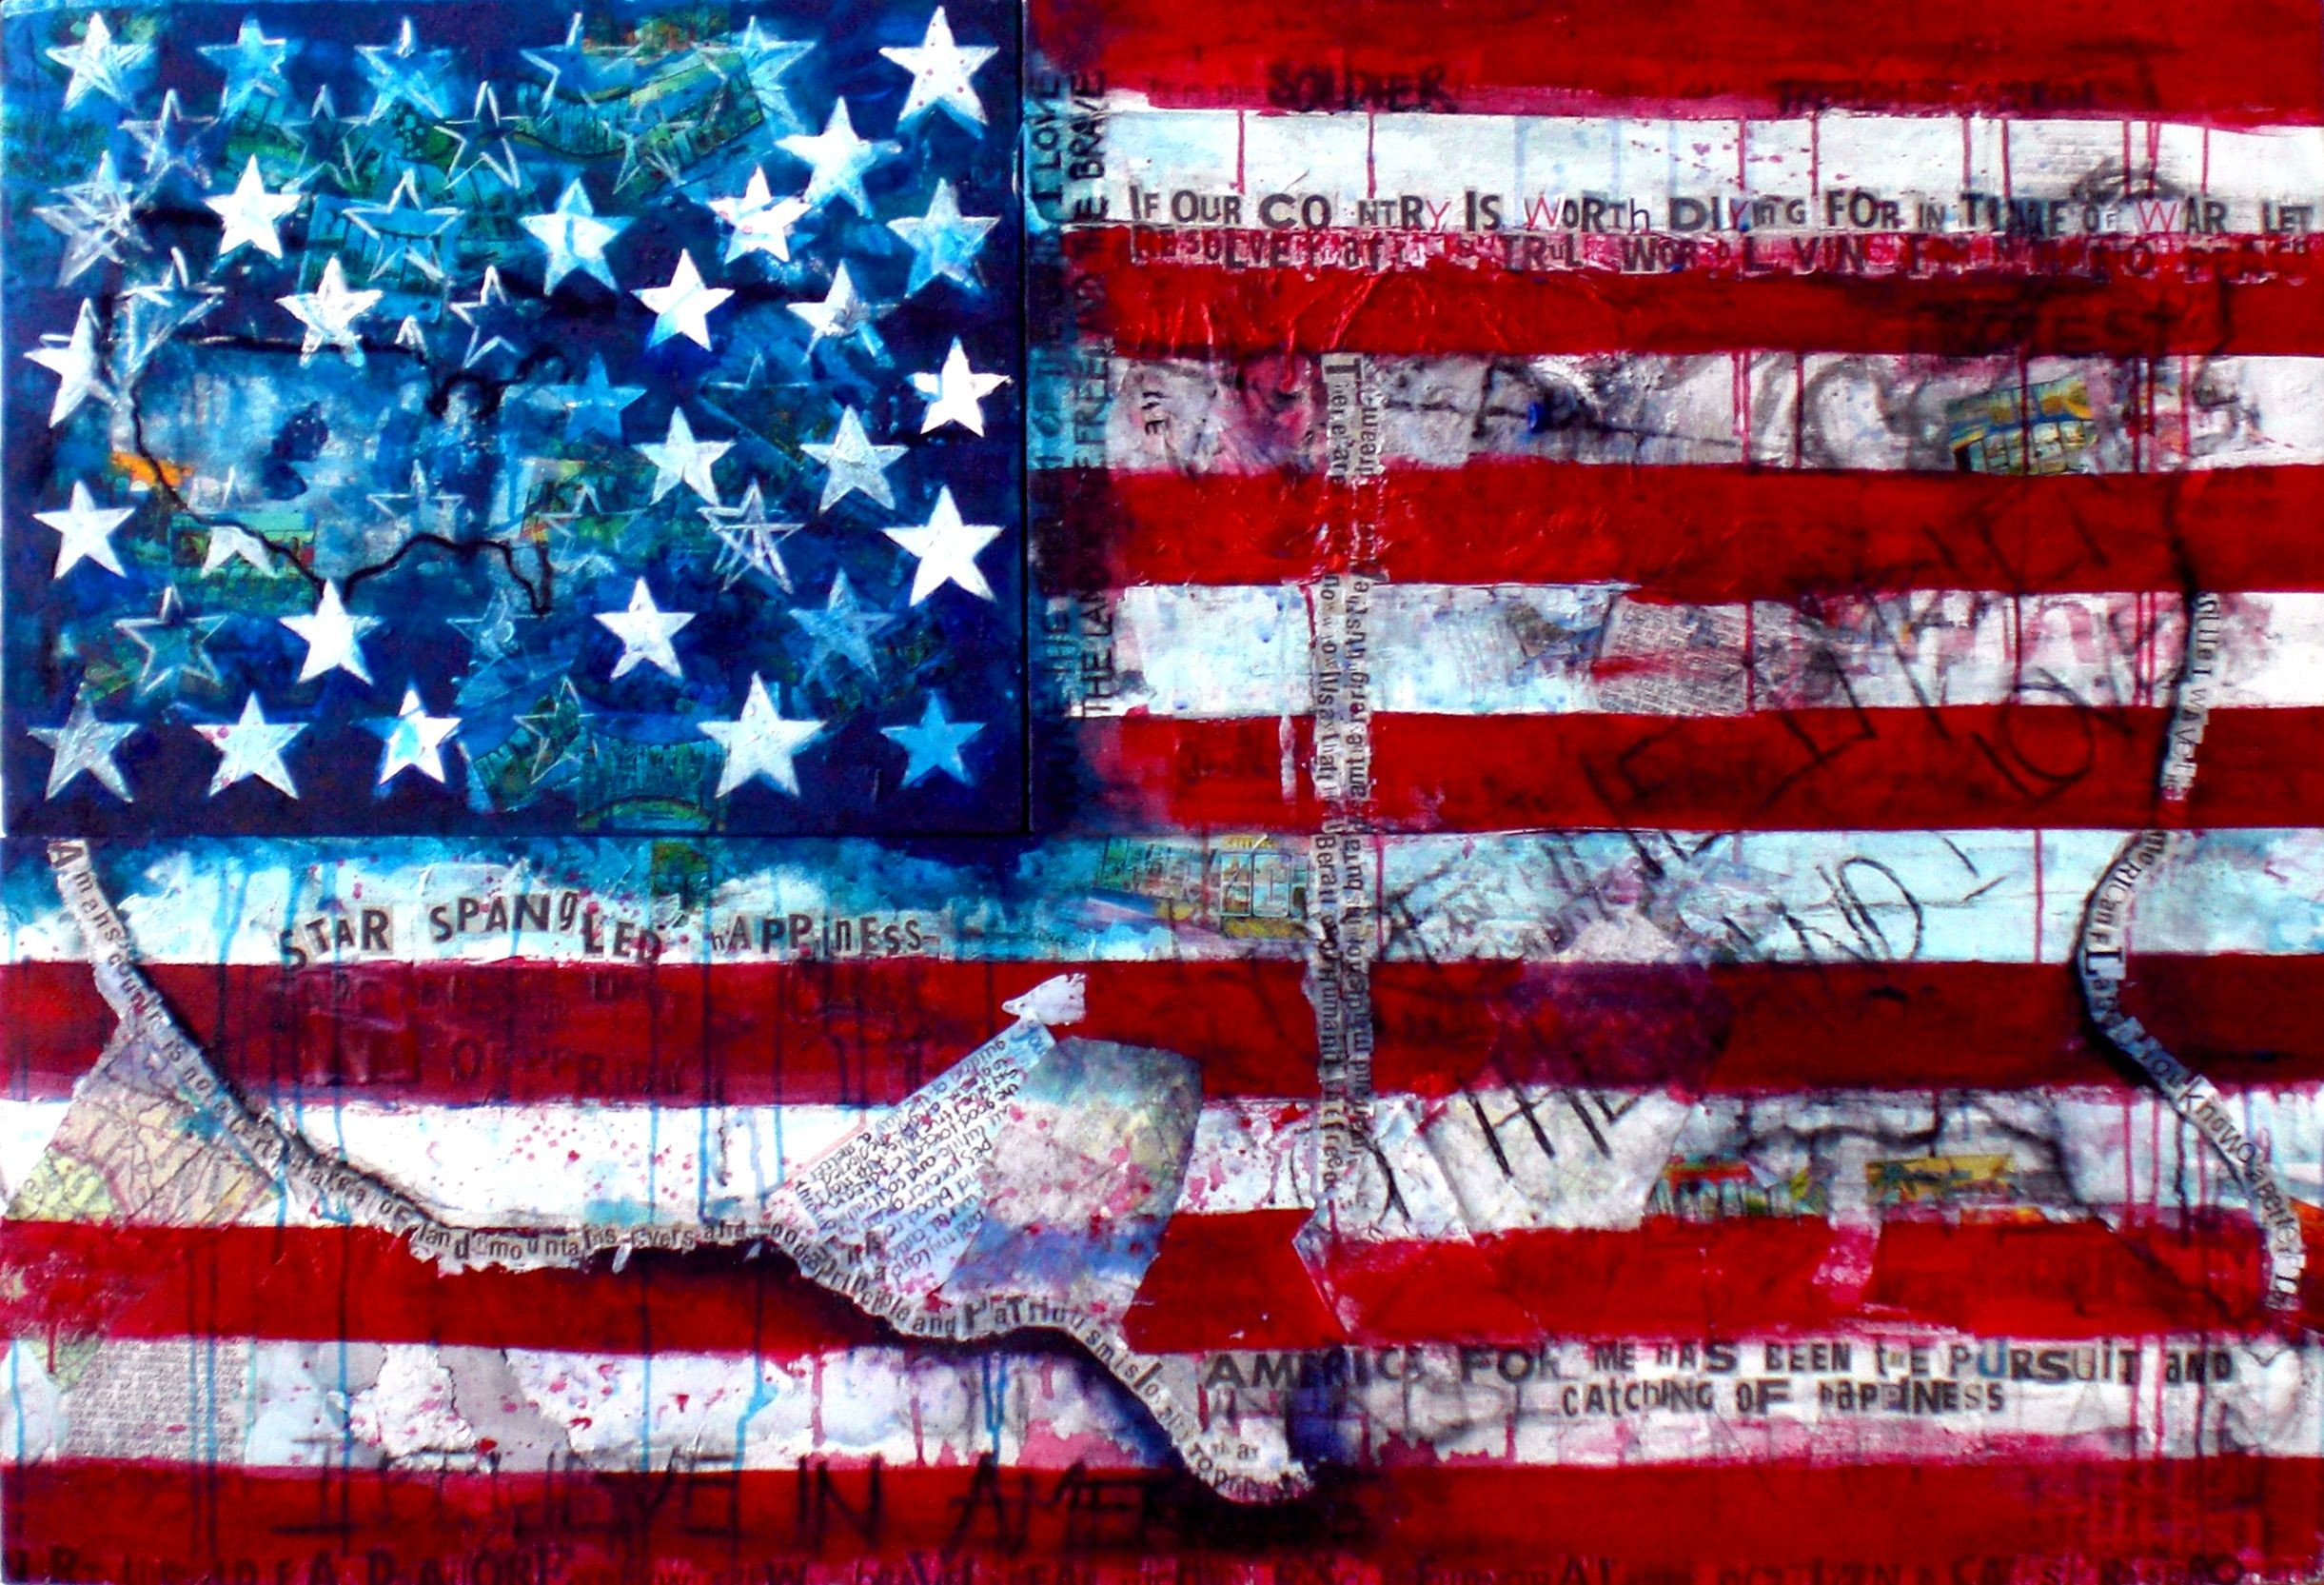 Res: 2442x1665, USA flag art backgrounds